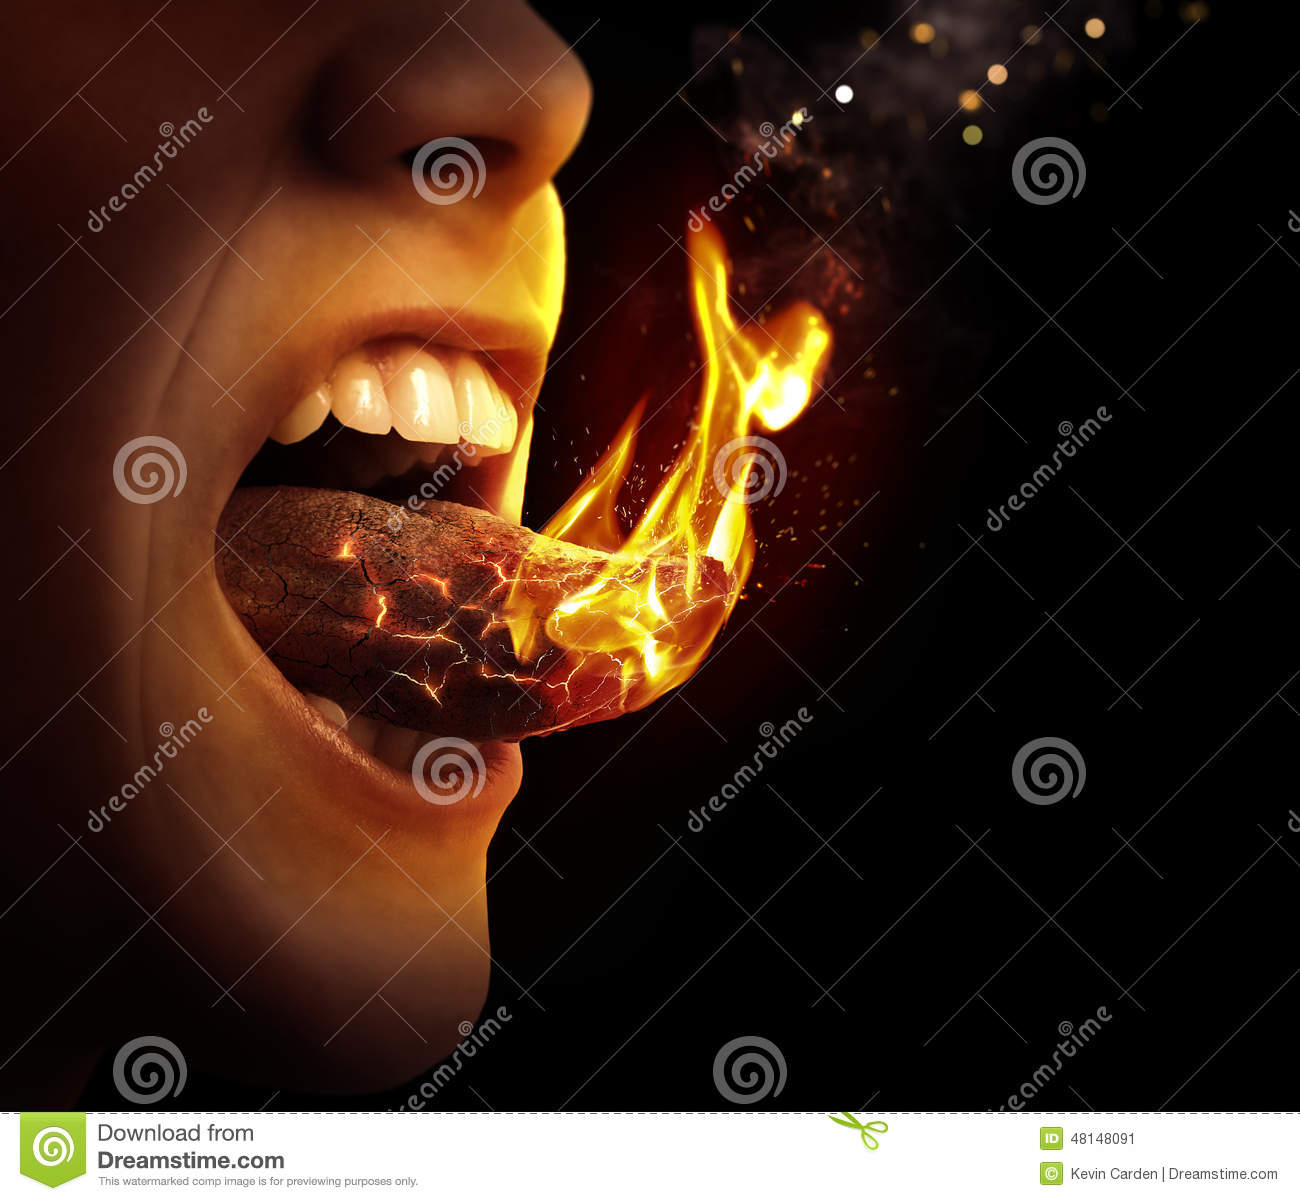 Hot Un Stock >> Tongue On Fire Stock Photo - Image: 48148091